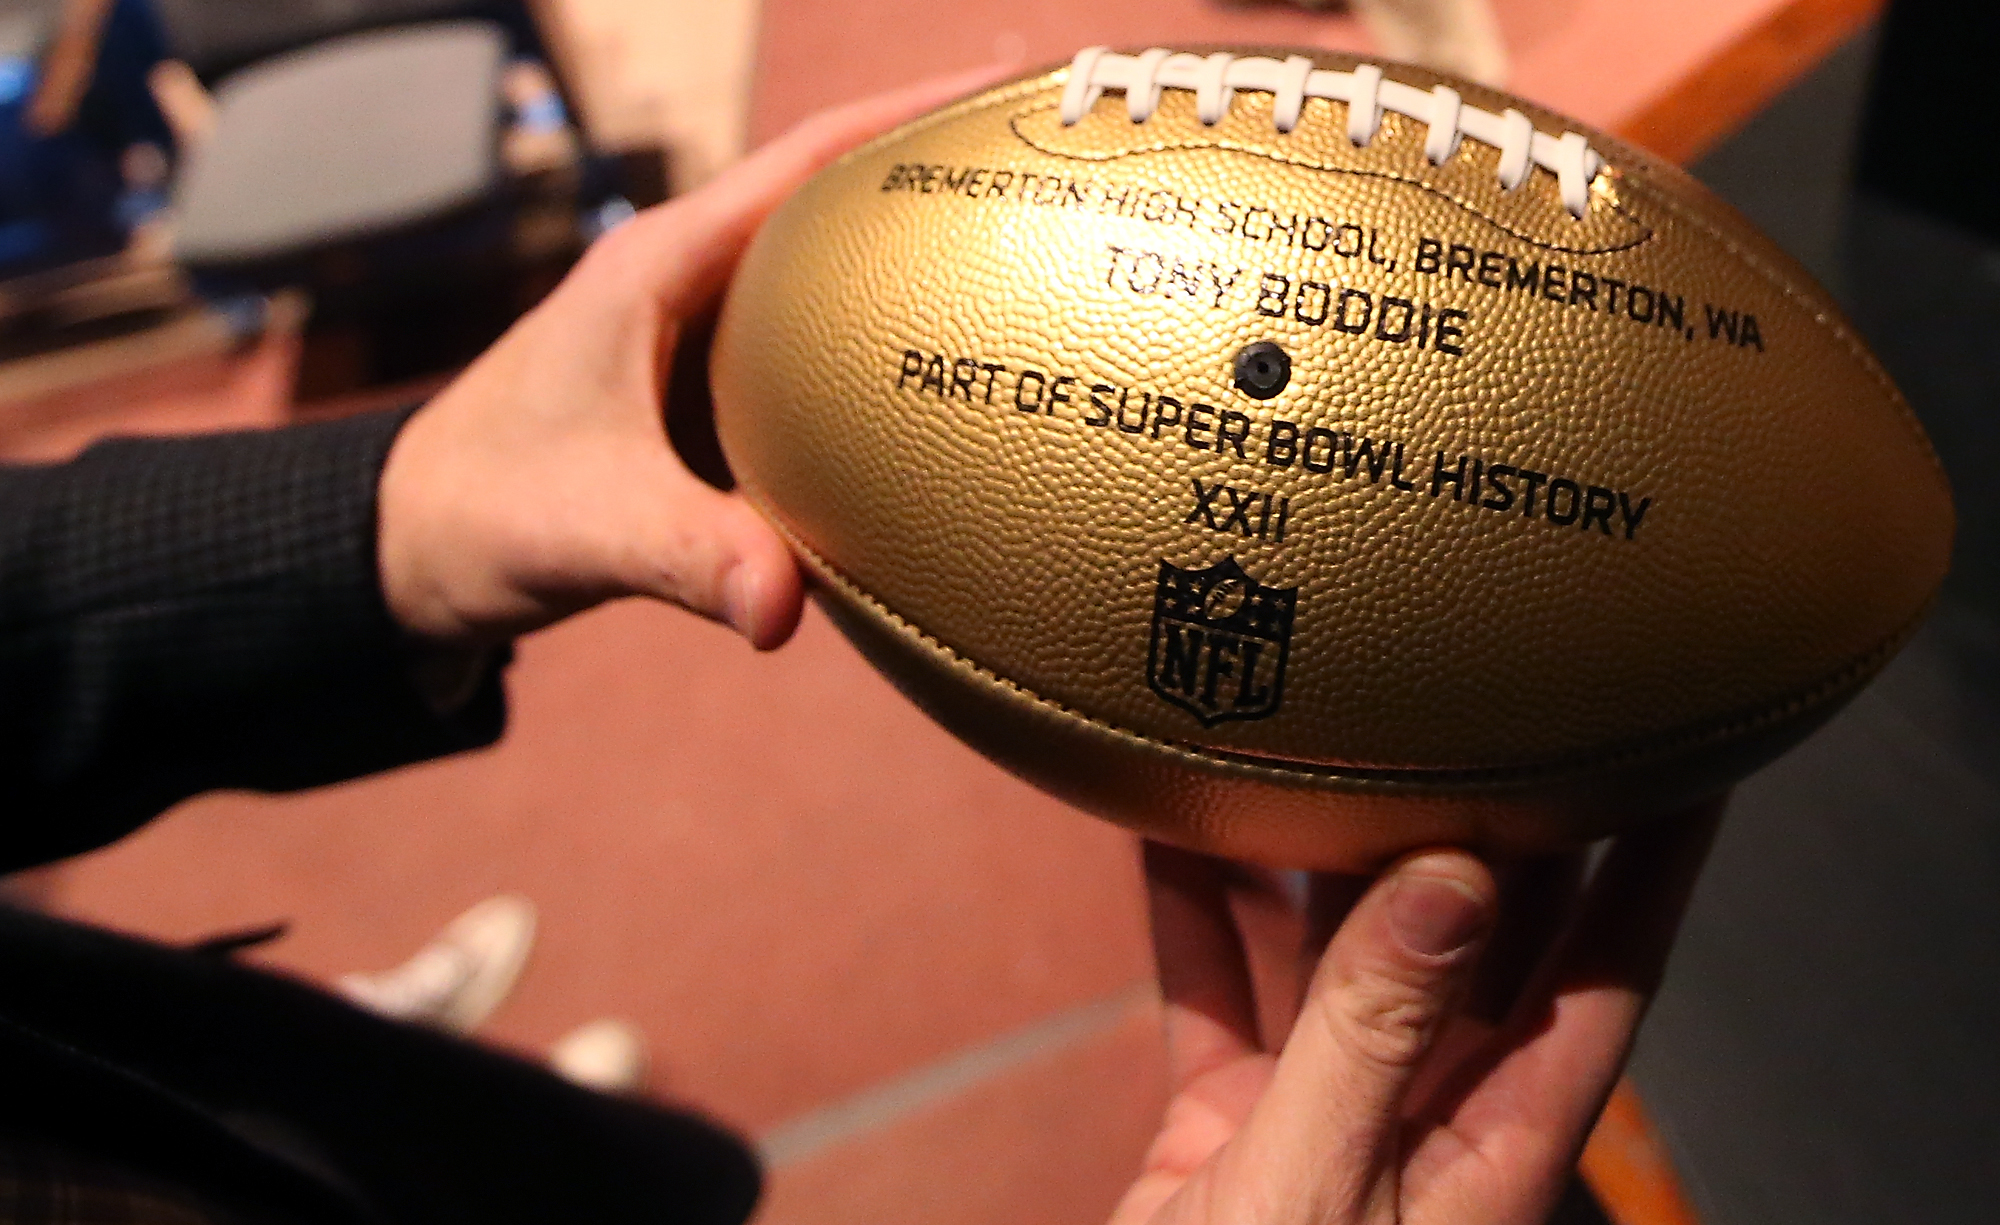 Bremerton High School principal John Polm holds alumni Tony Boddie's gold football commemorating his trip to the Super Bowl with the Denver Broncos. (MEEGAN M. REID / KITSAP SUN)